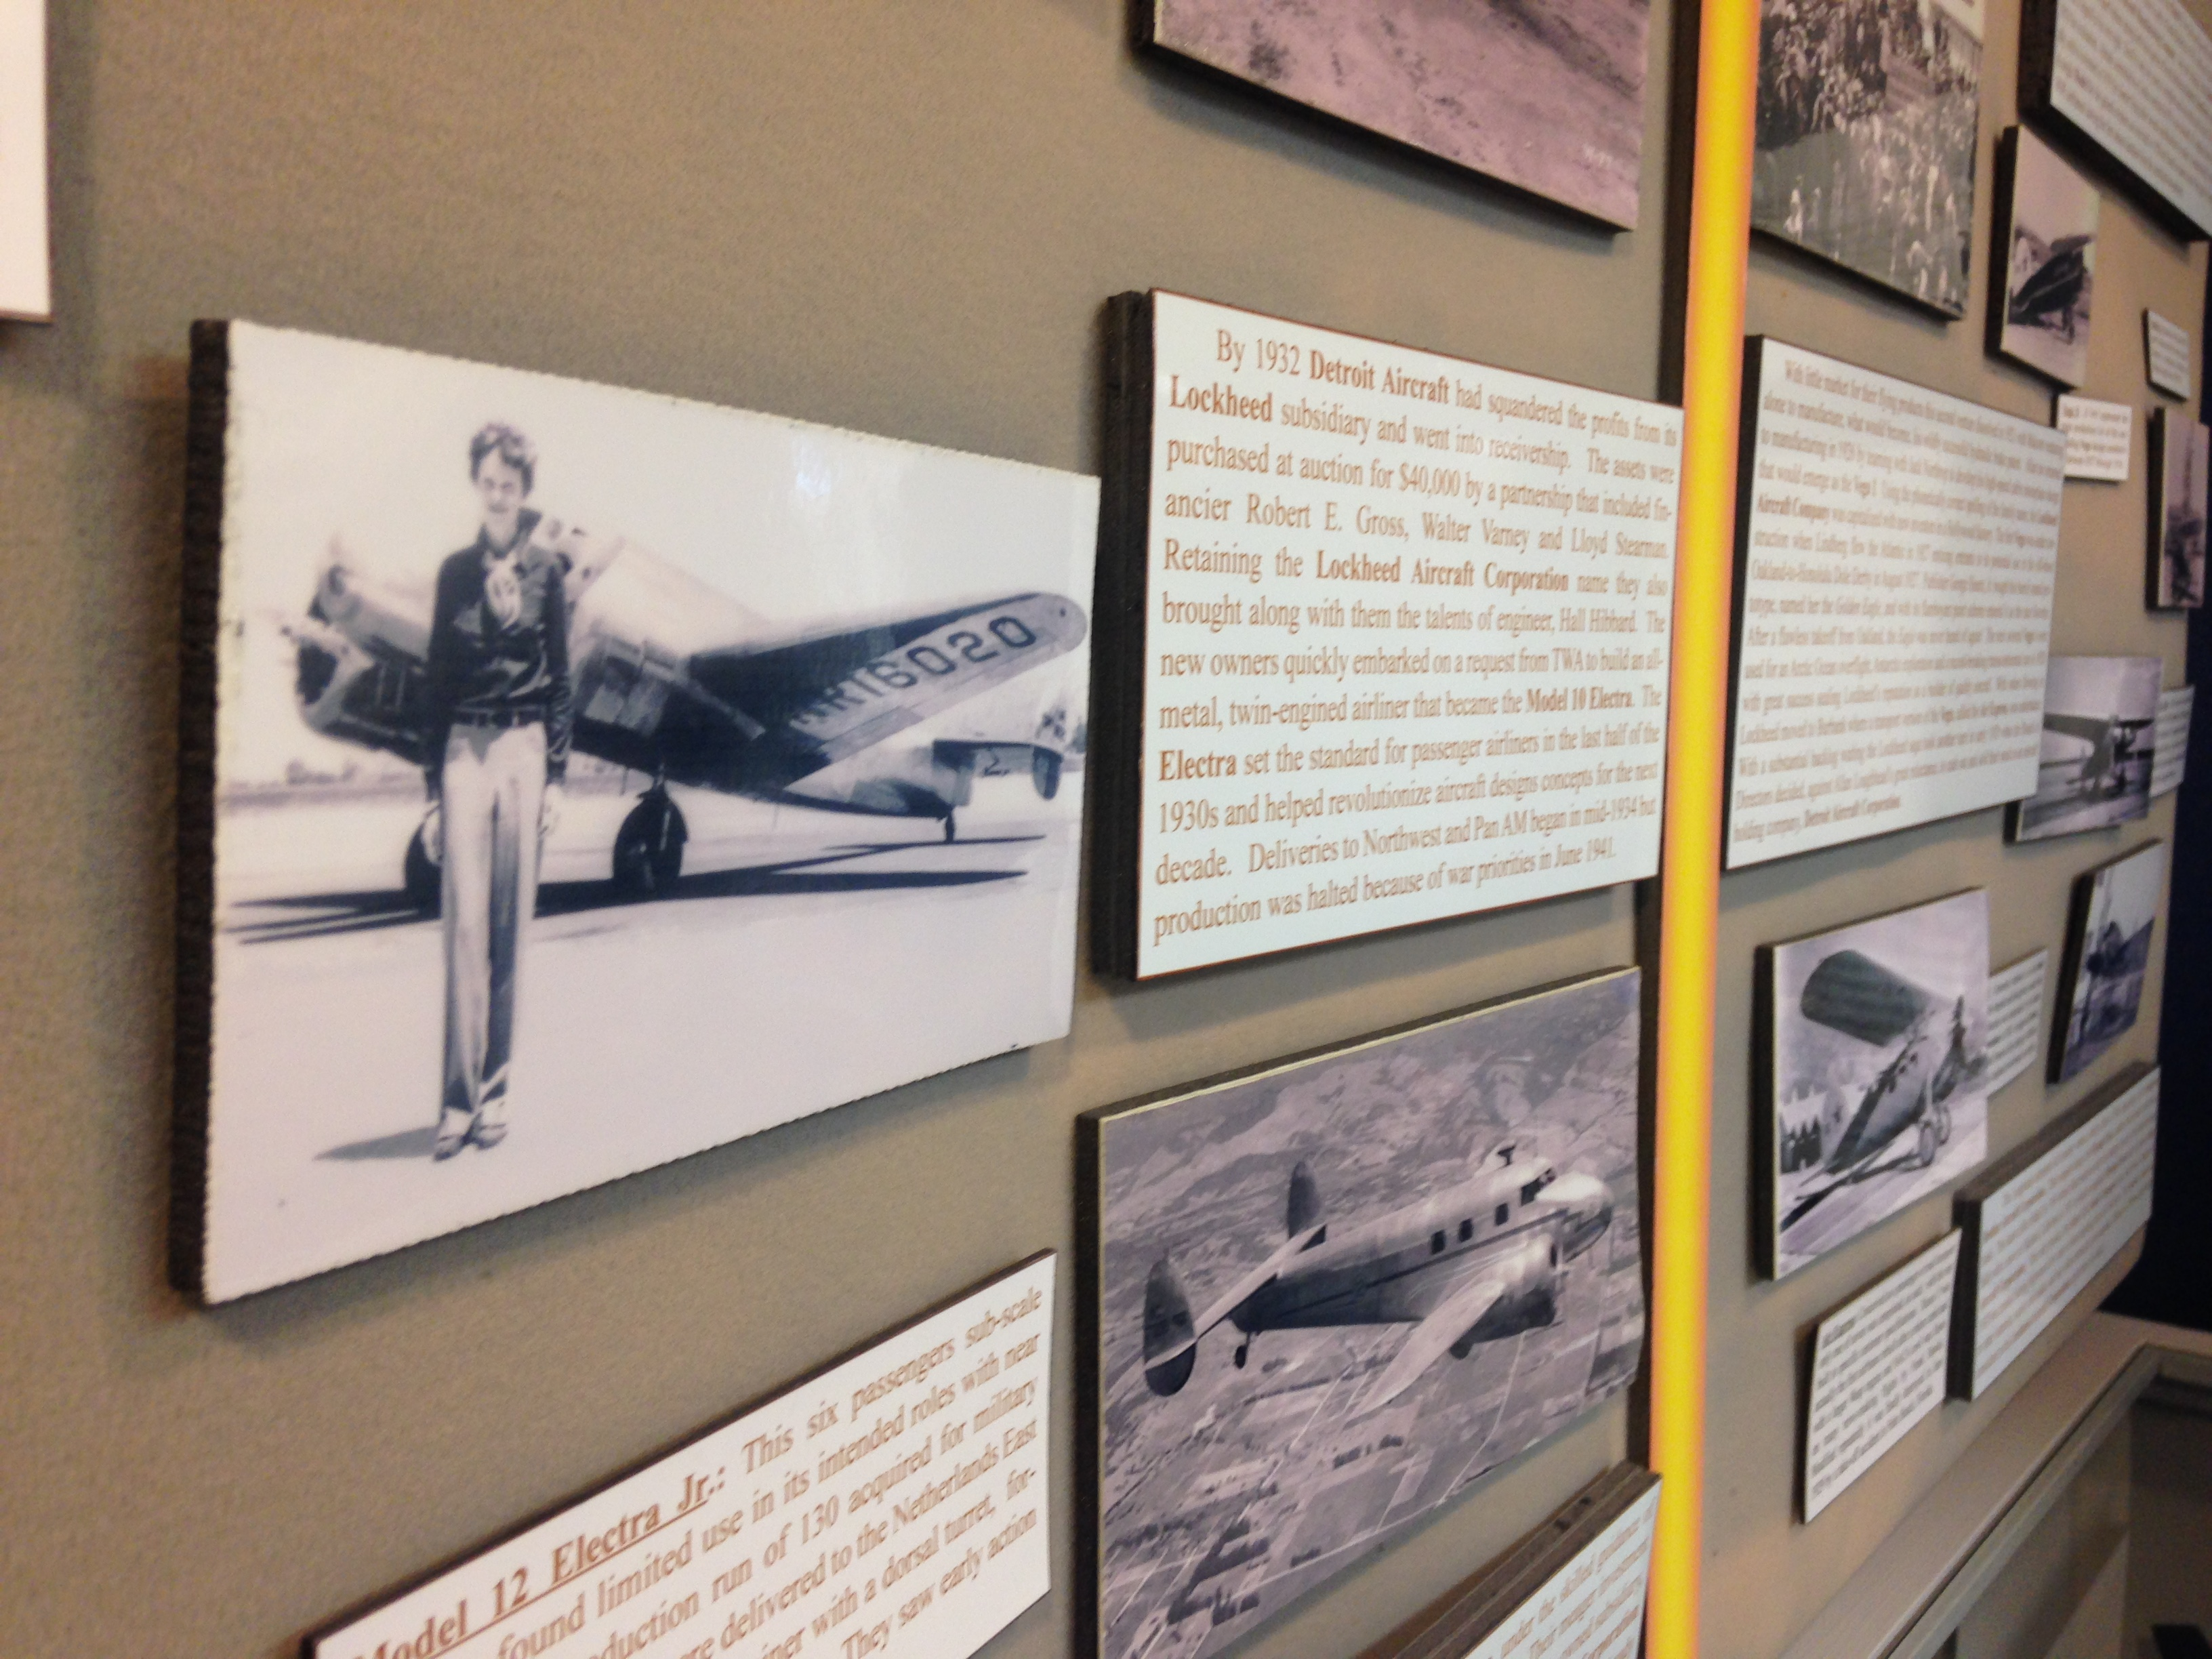 Amelia Earhart exhibit at Martin State Airport